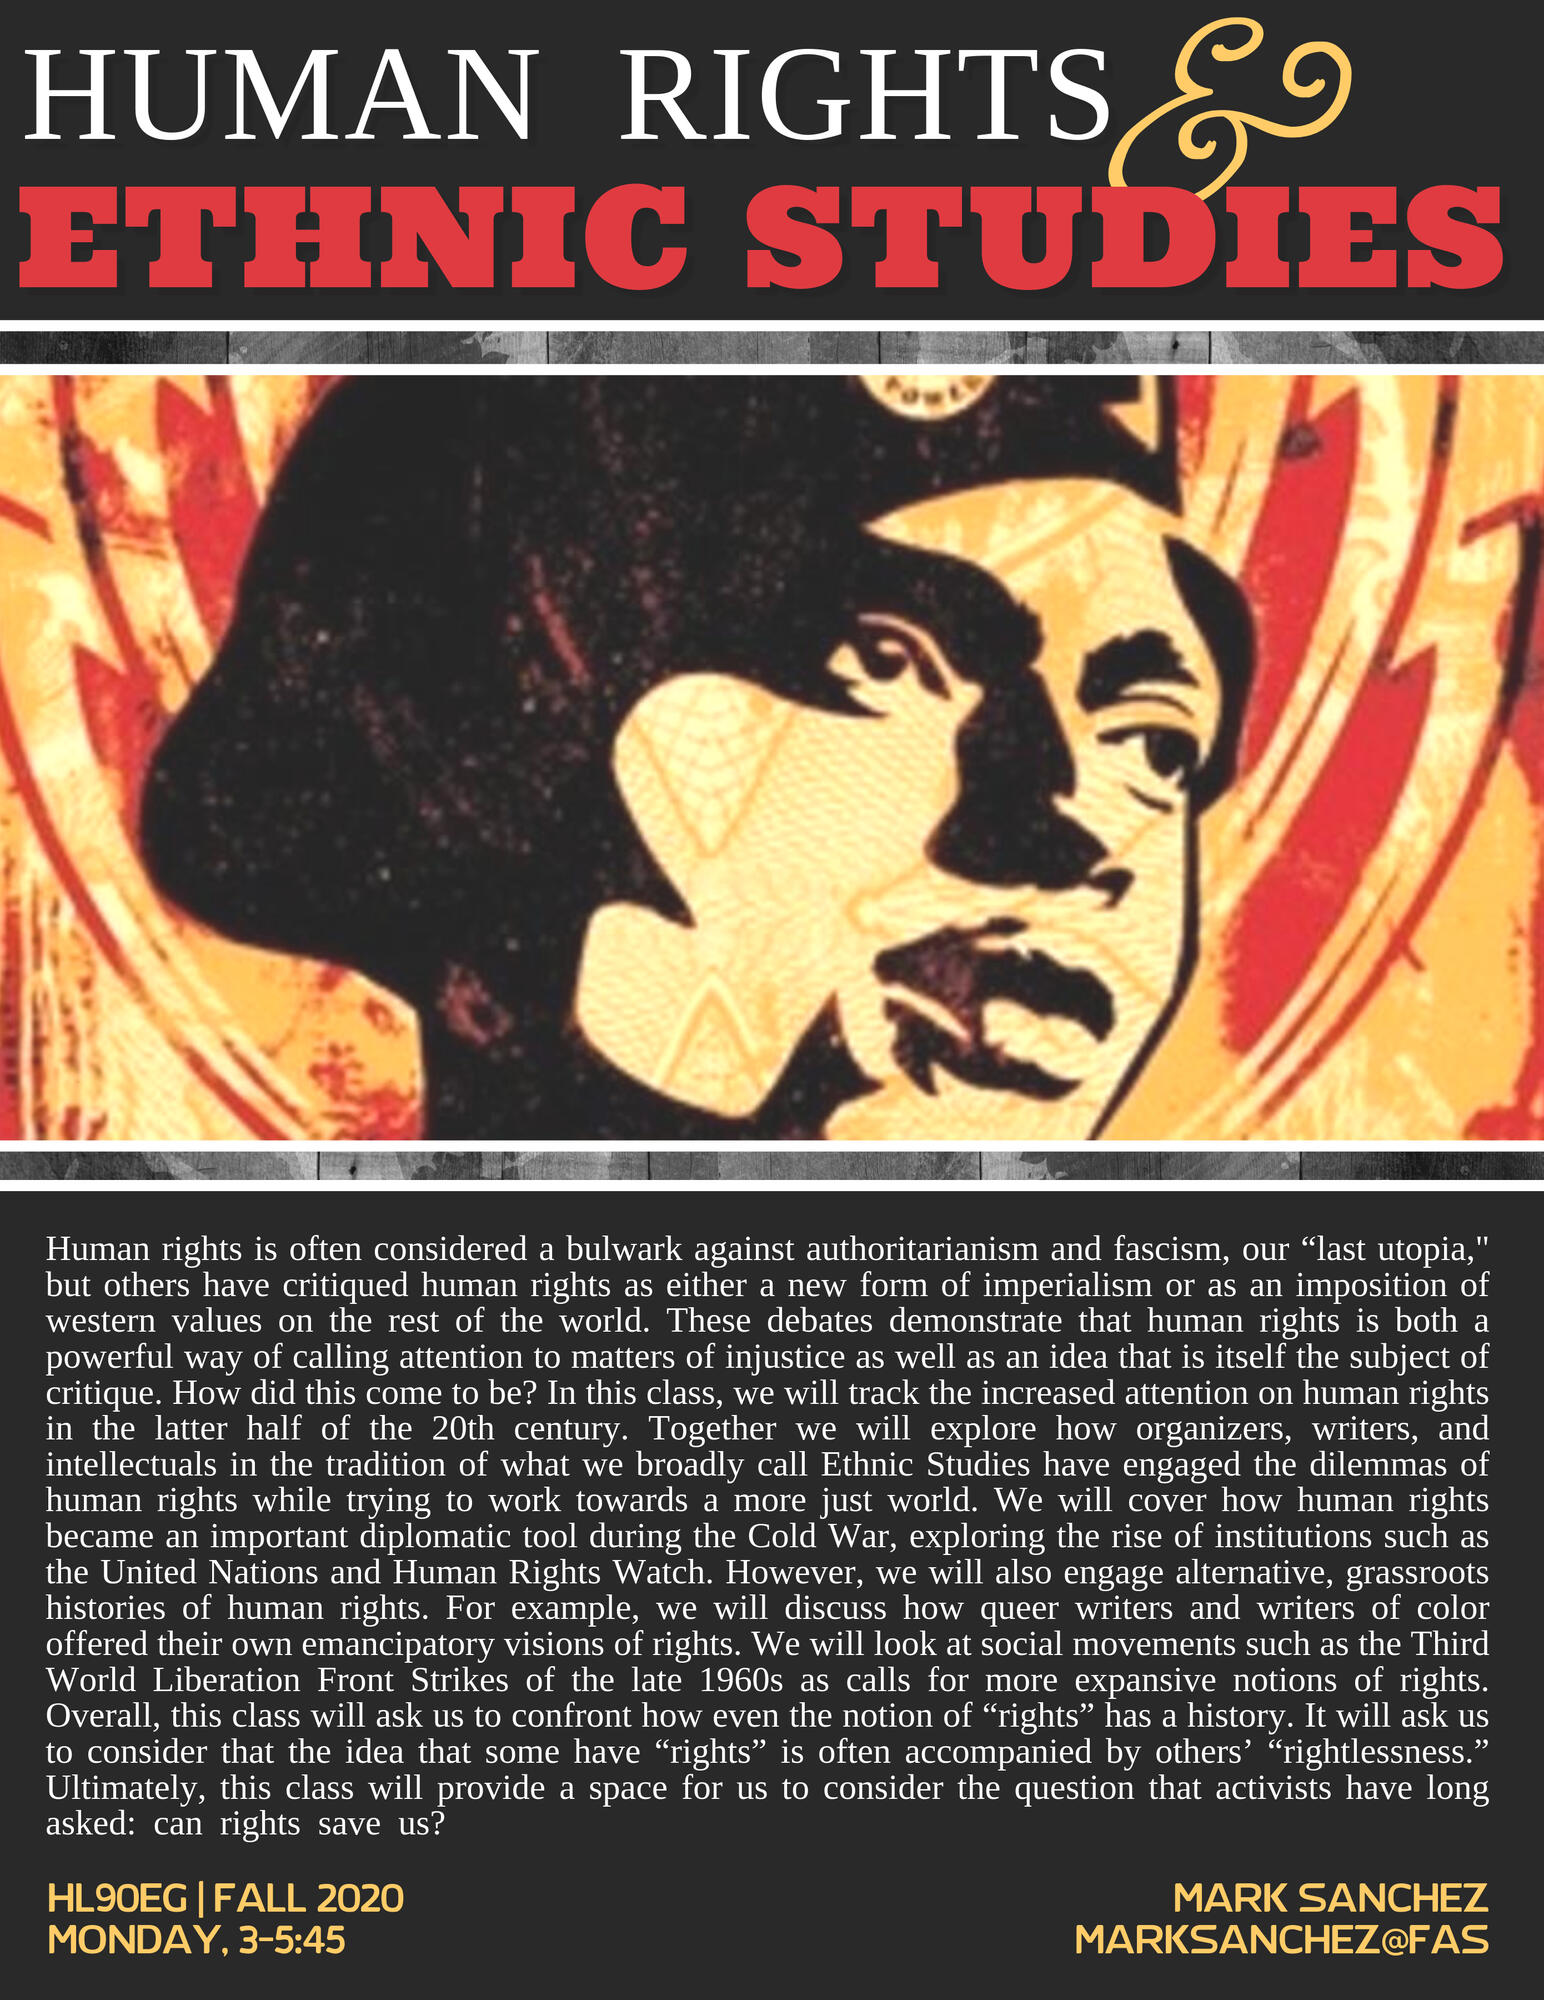 Human Rights and Ethnic Studies